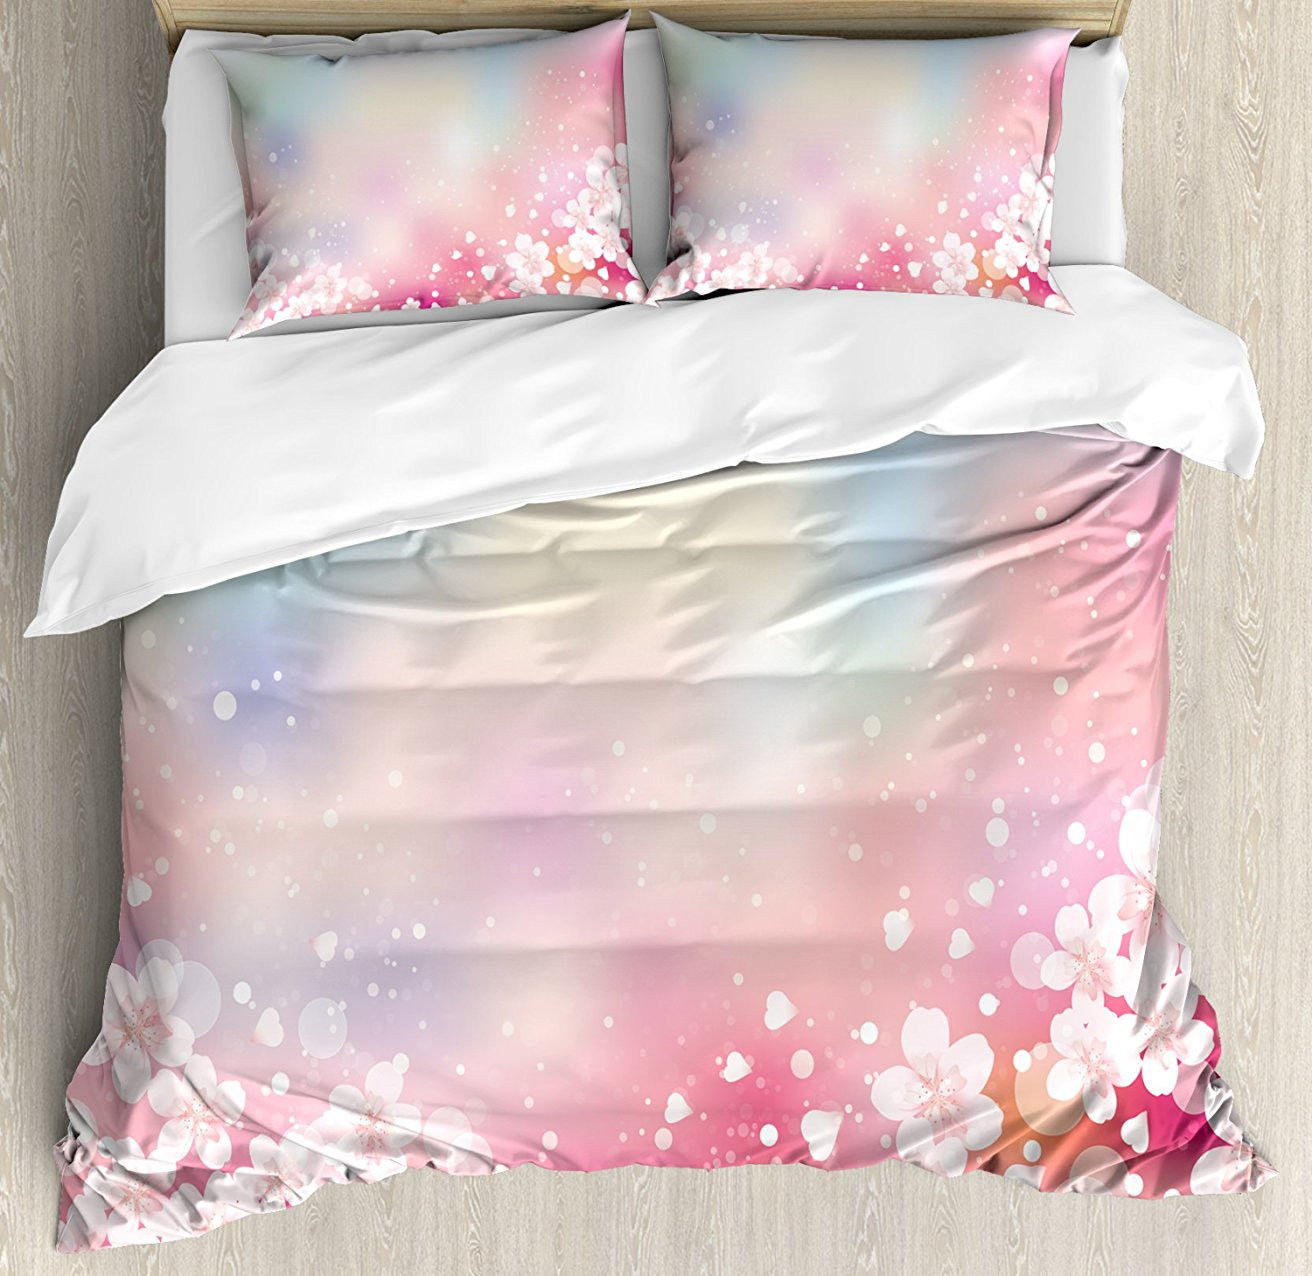 Pastel Duvet Cover Set, Japanese Nature Sakura Tree Cherry Blossoms Romantic Hazy Dreamy Cheerful 4 Piece Bedding Set